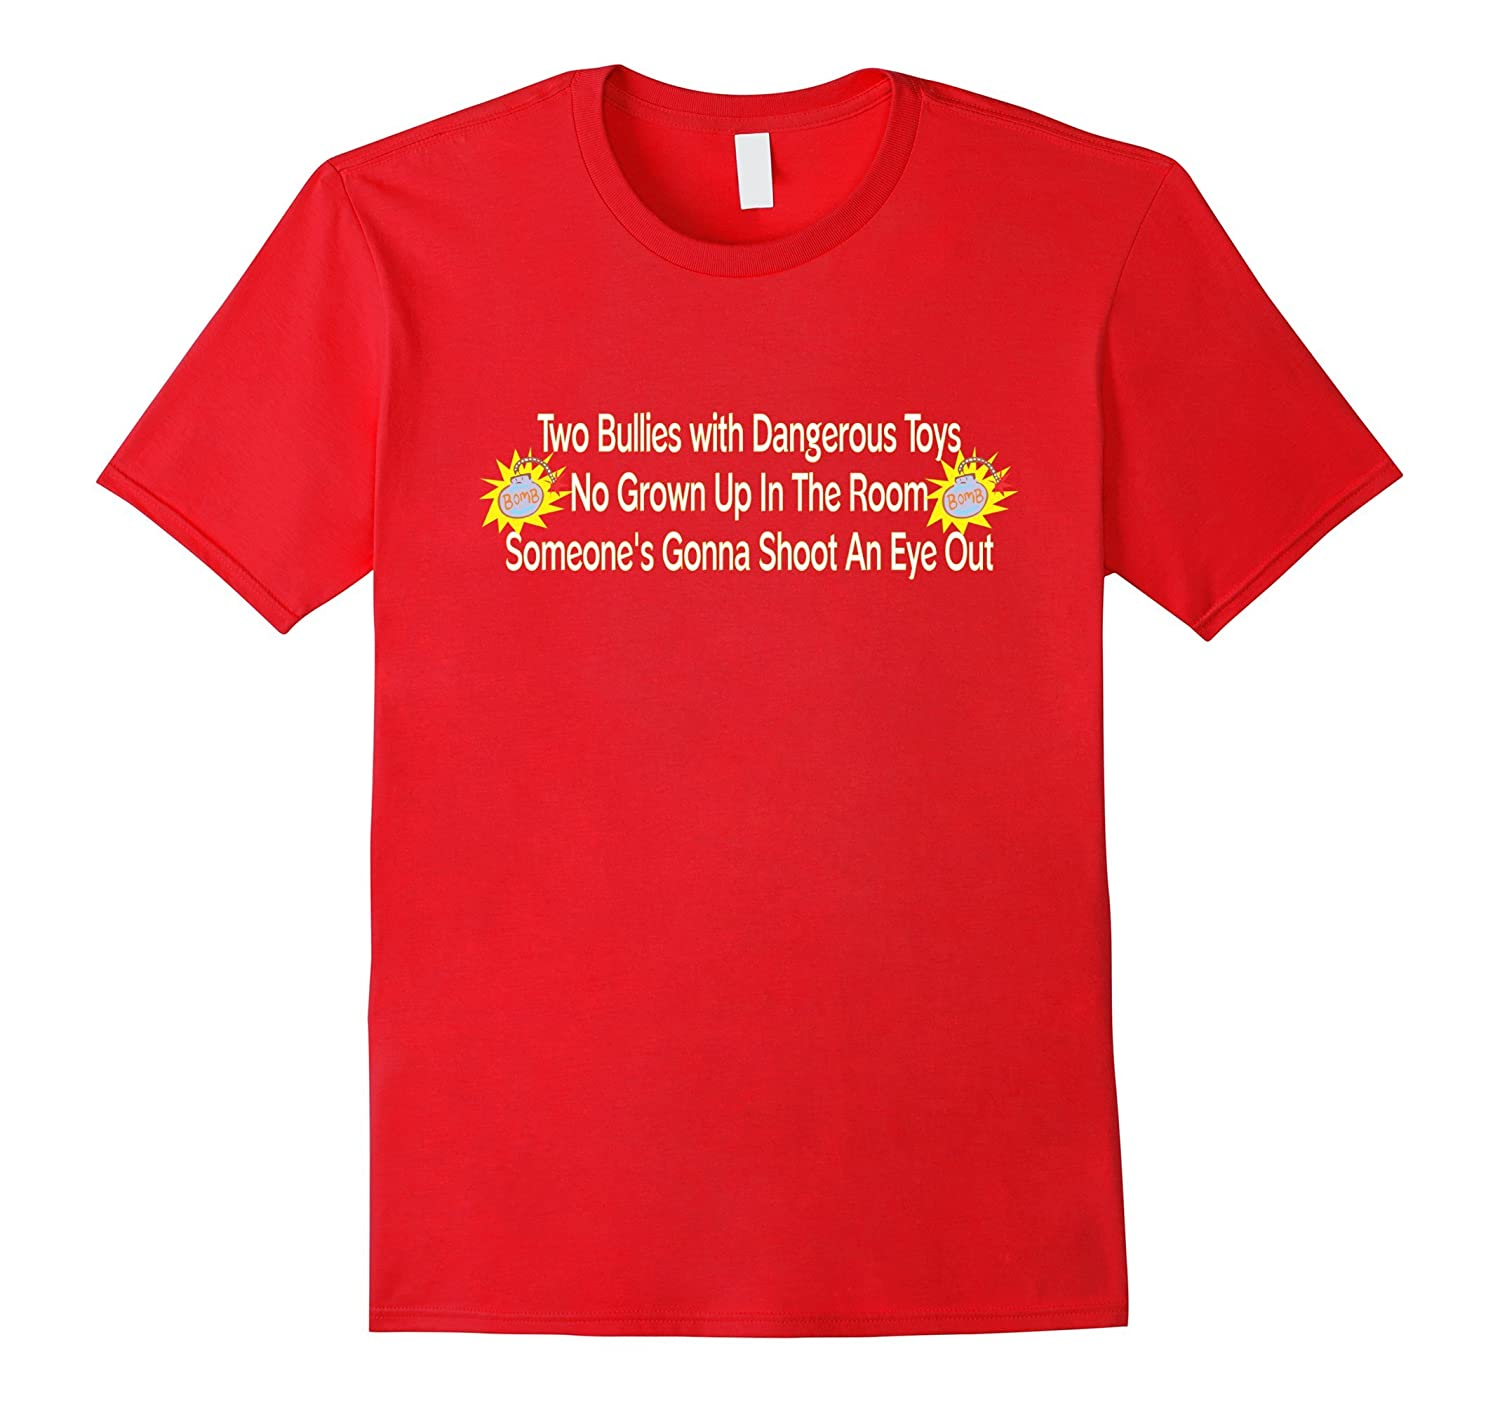 2 Bullies With Dangerous Toys T-Shirt-BN